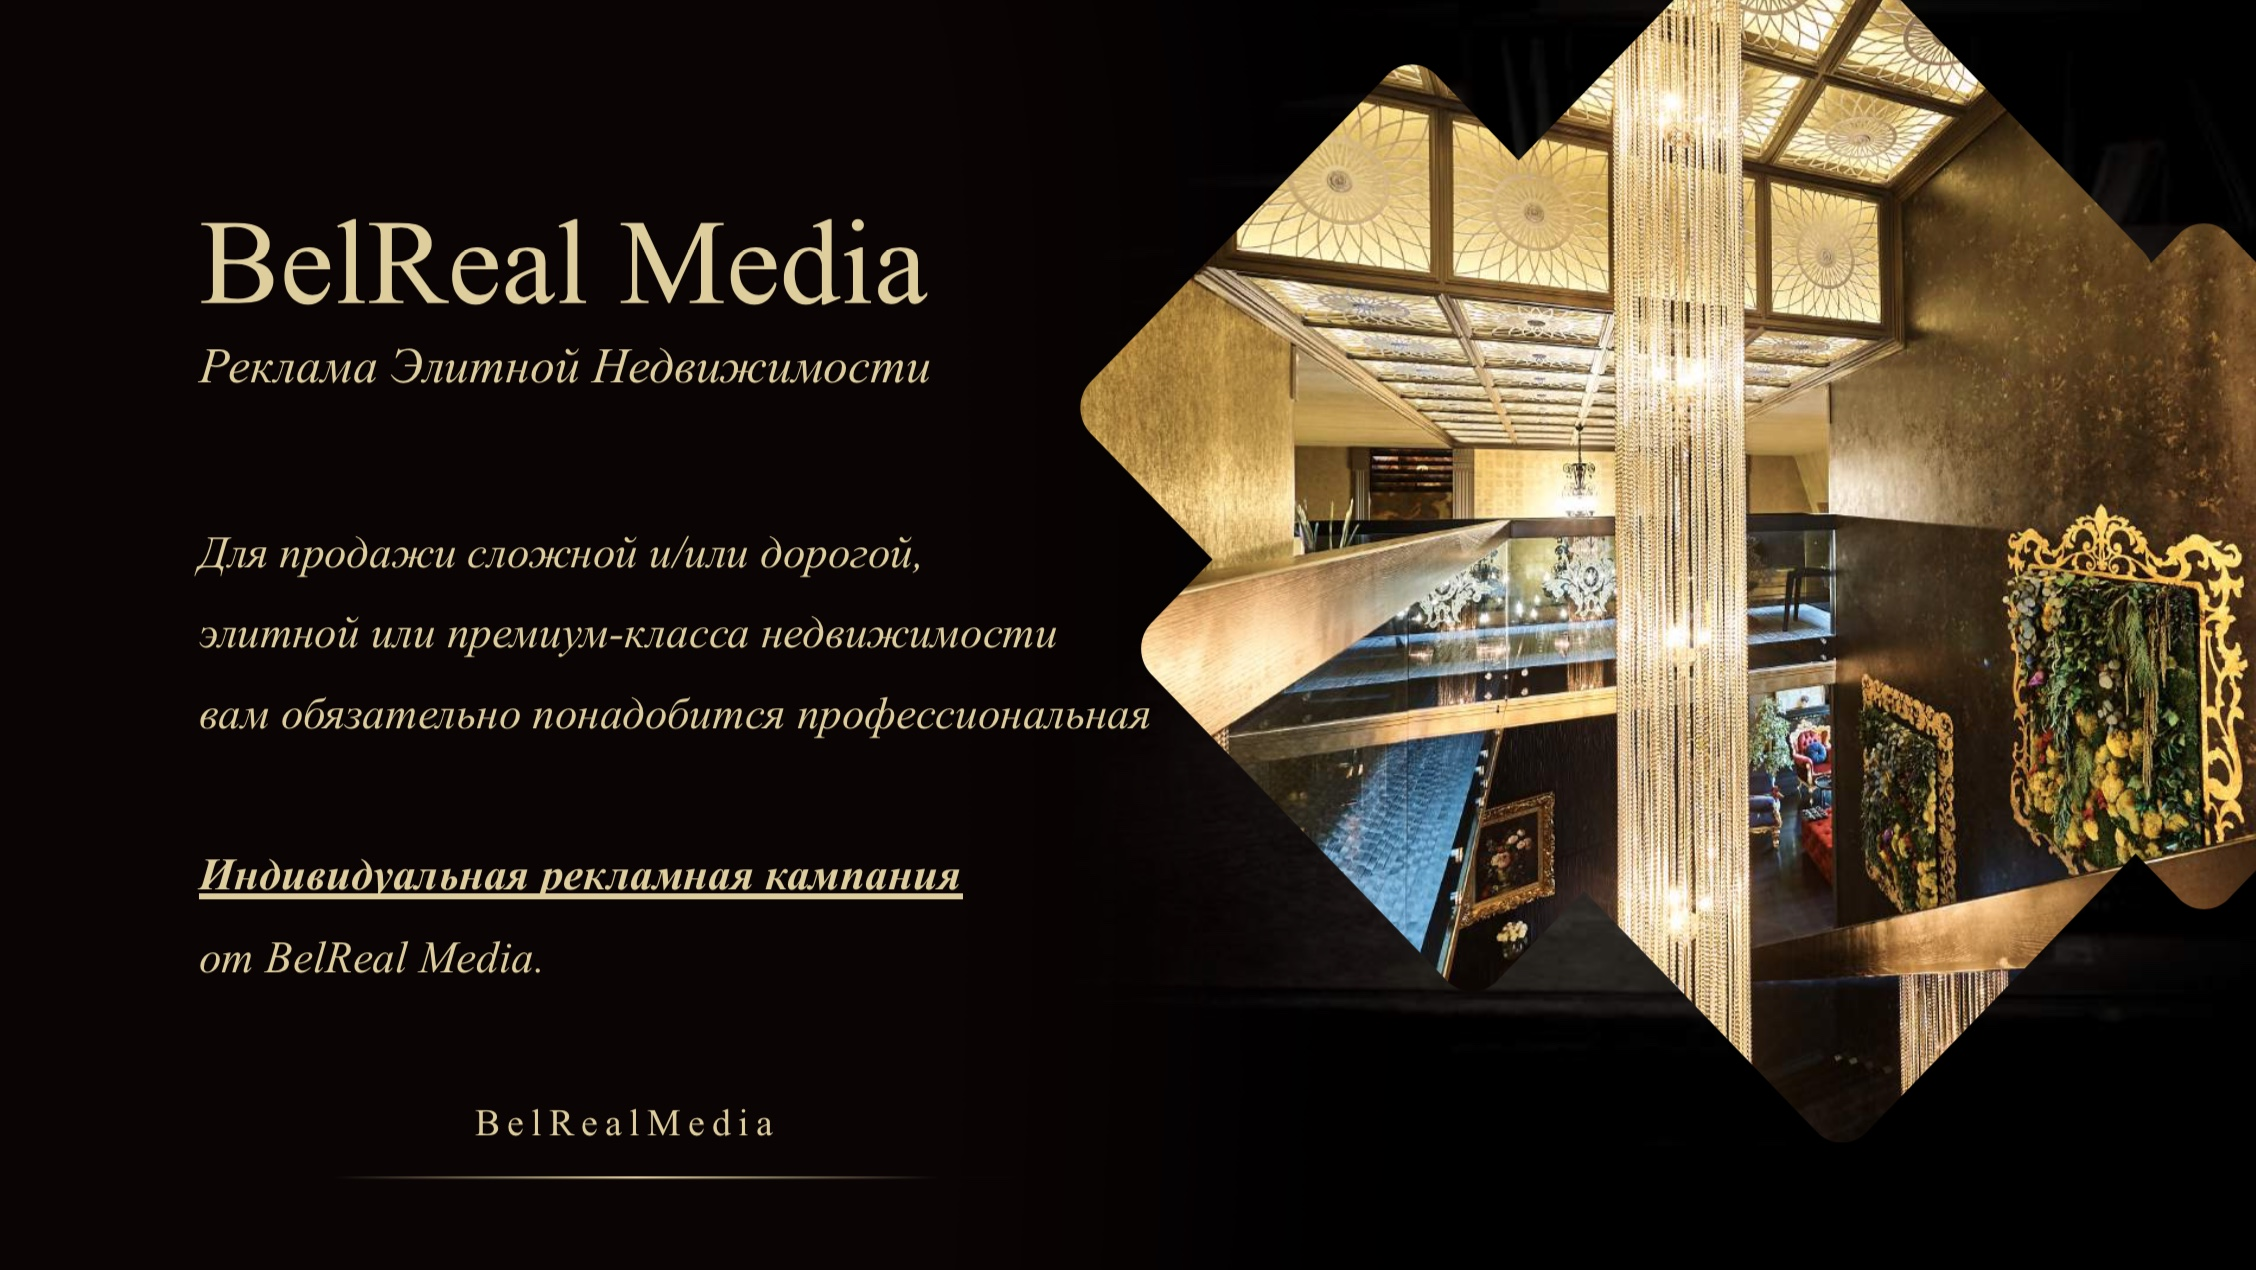 Презентация BelReal Media Luxury